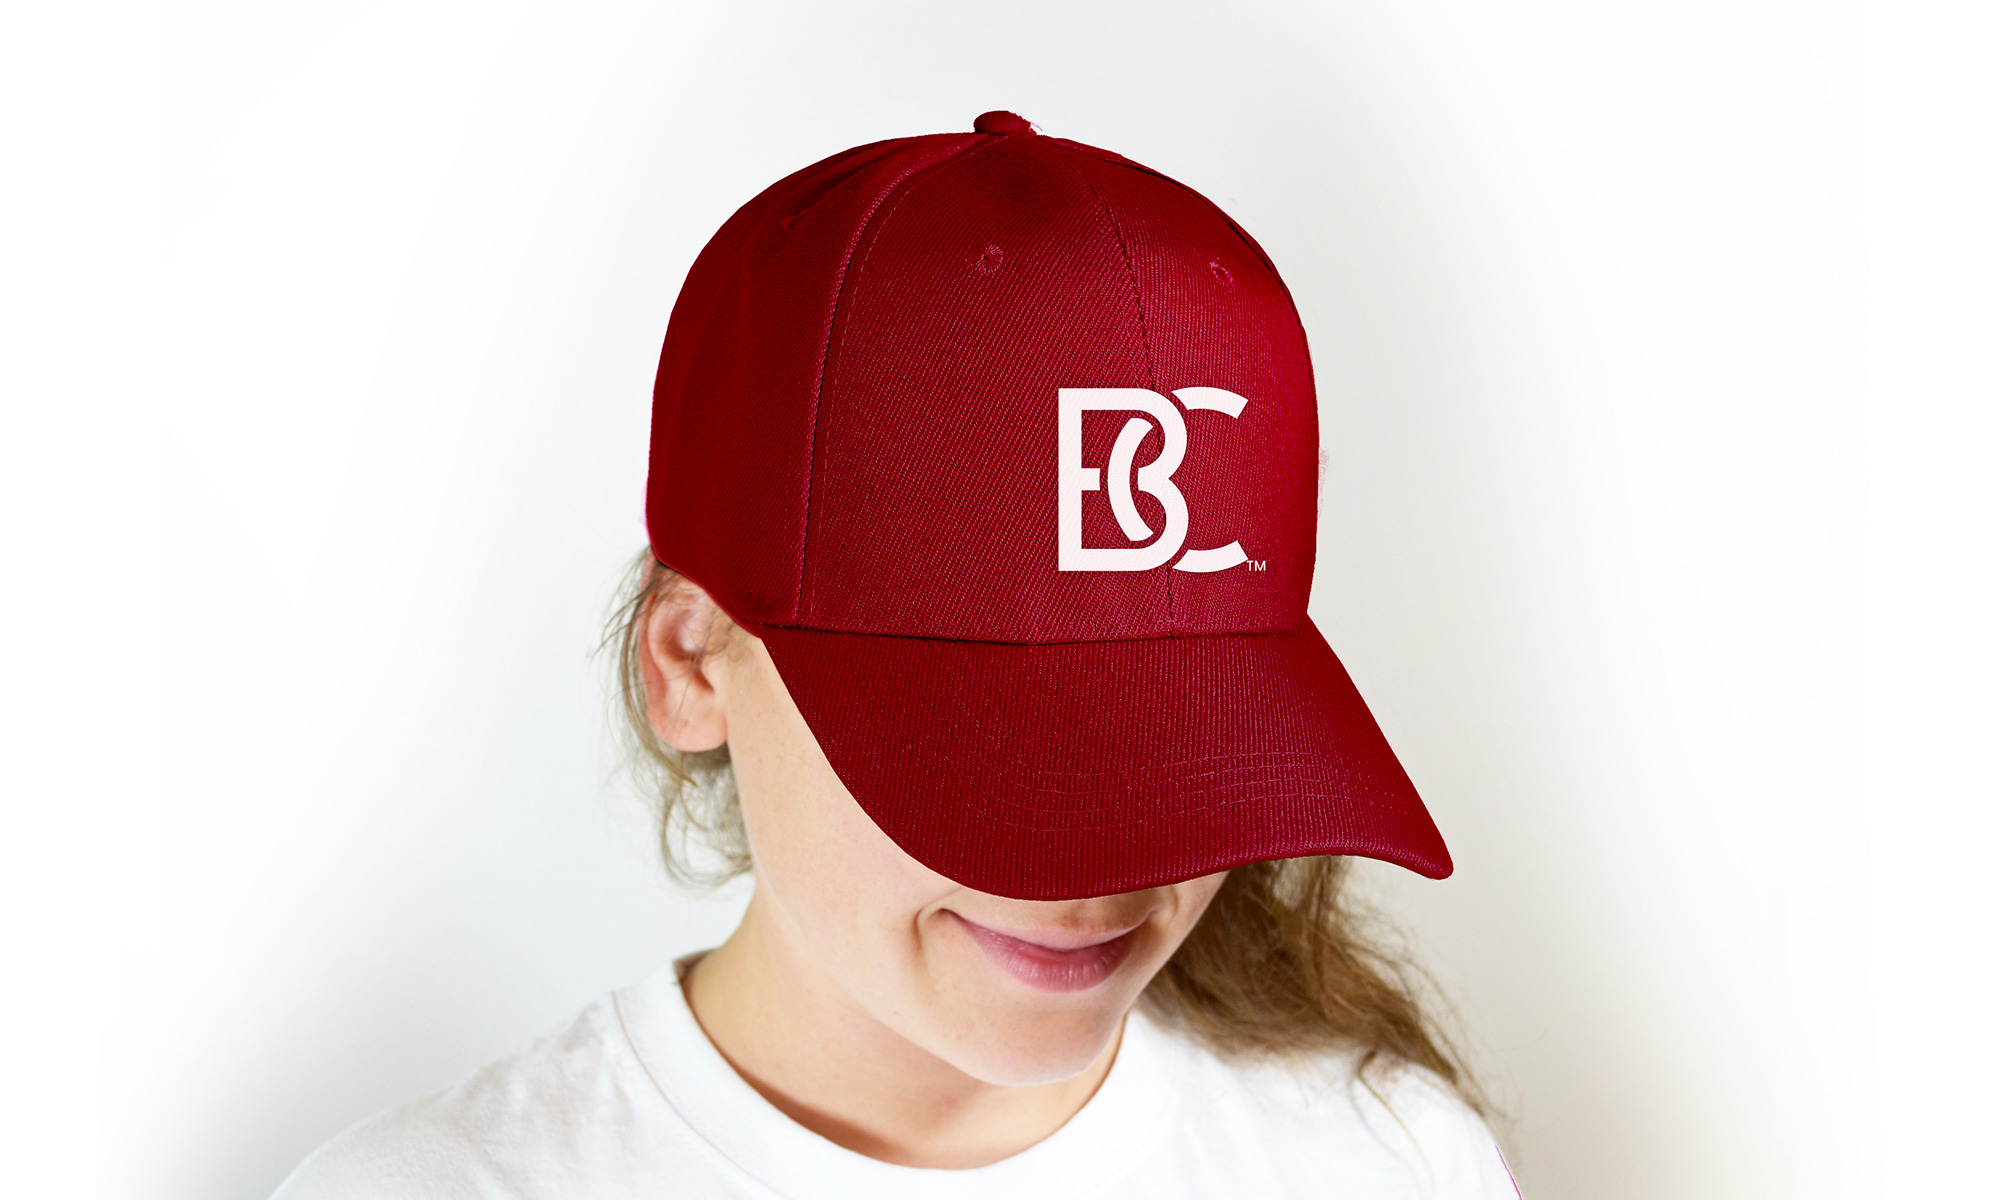 A hat with the new logo.